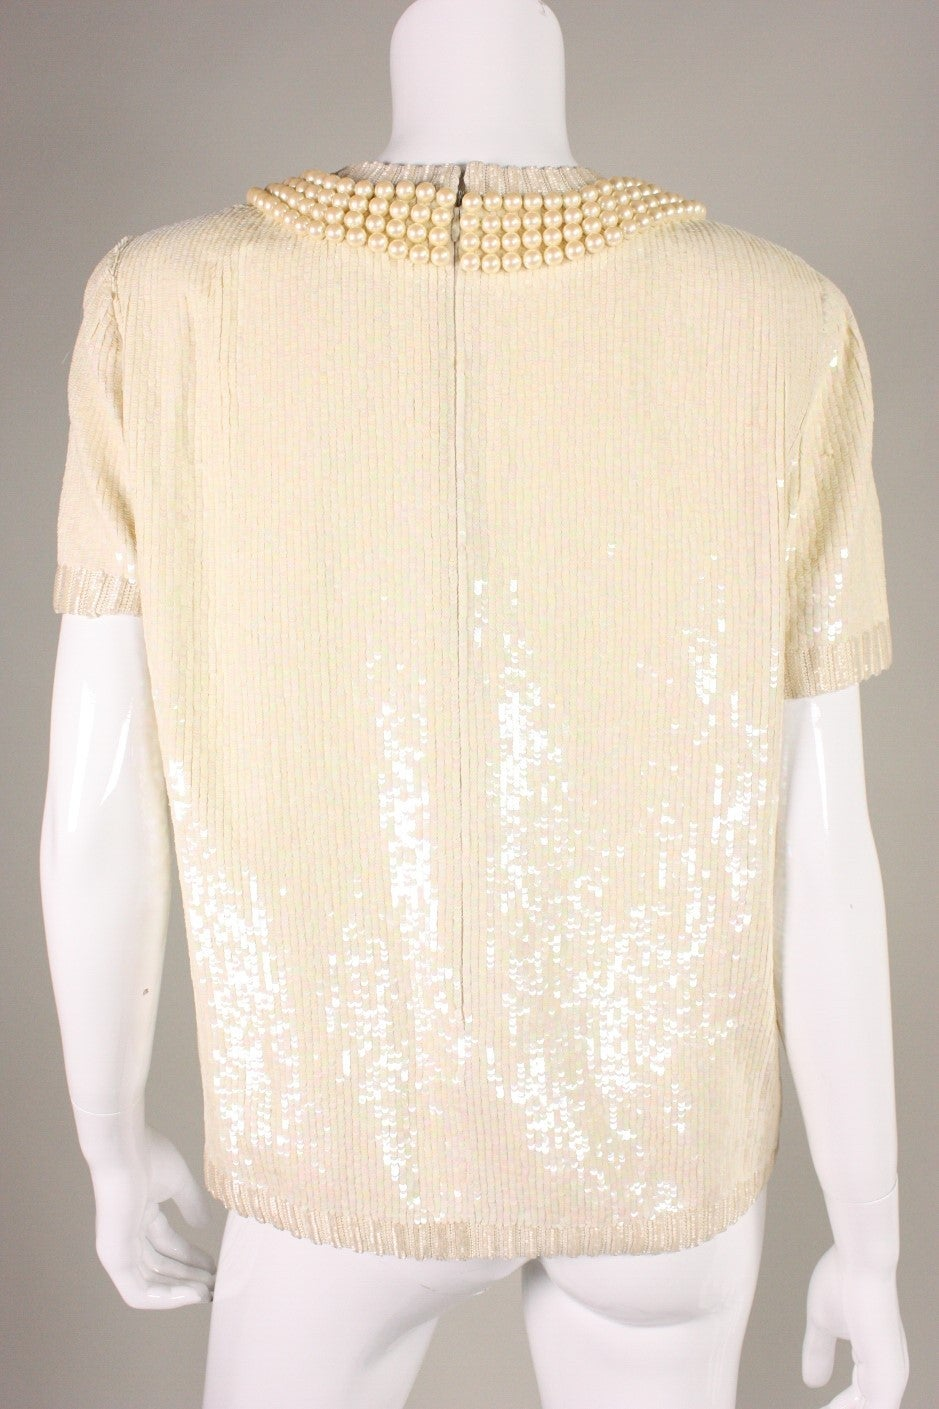 Vintage Bill Blass Sequined Encrusted Blouse with Trompe l'Oiel Details 4